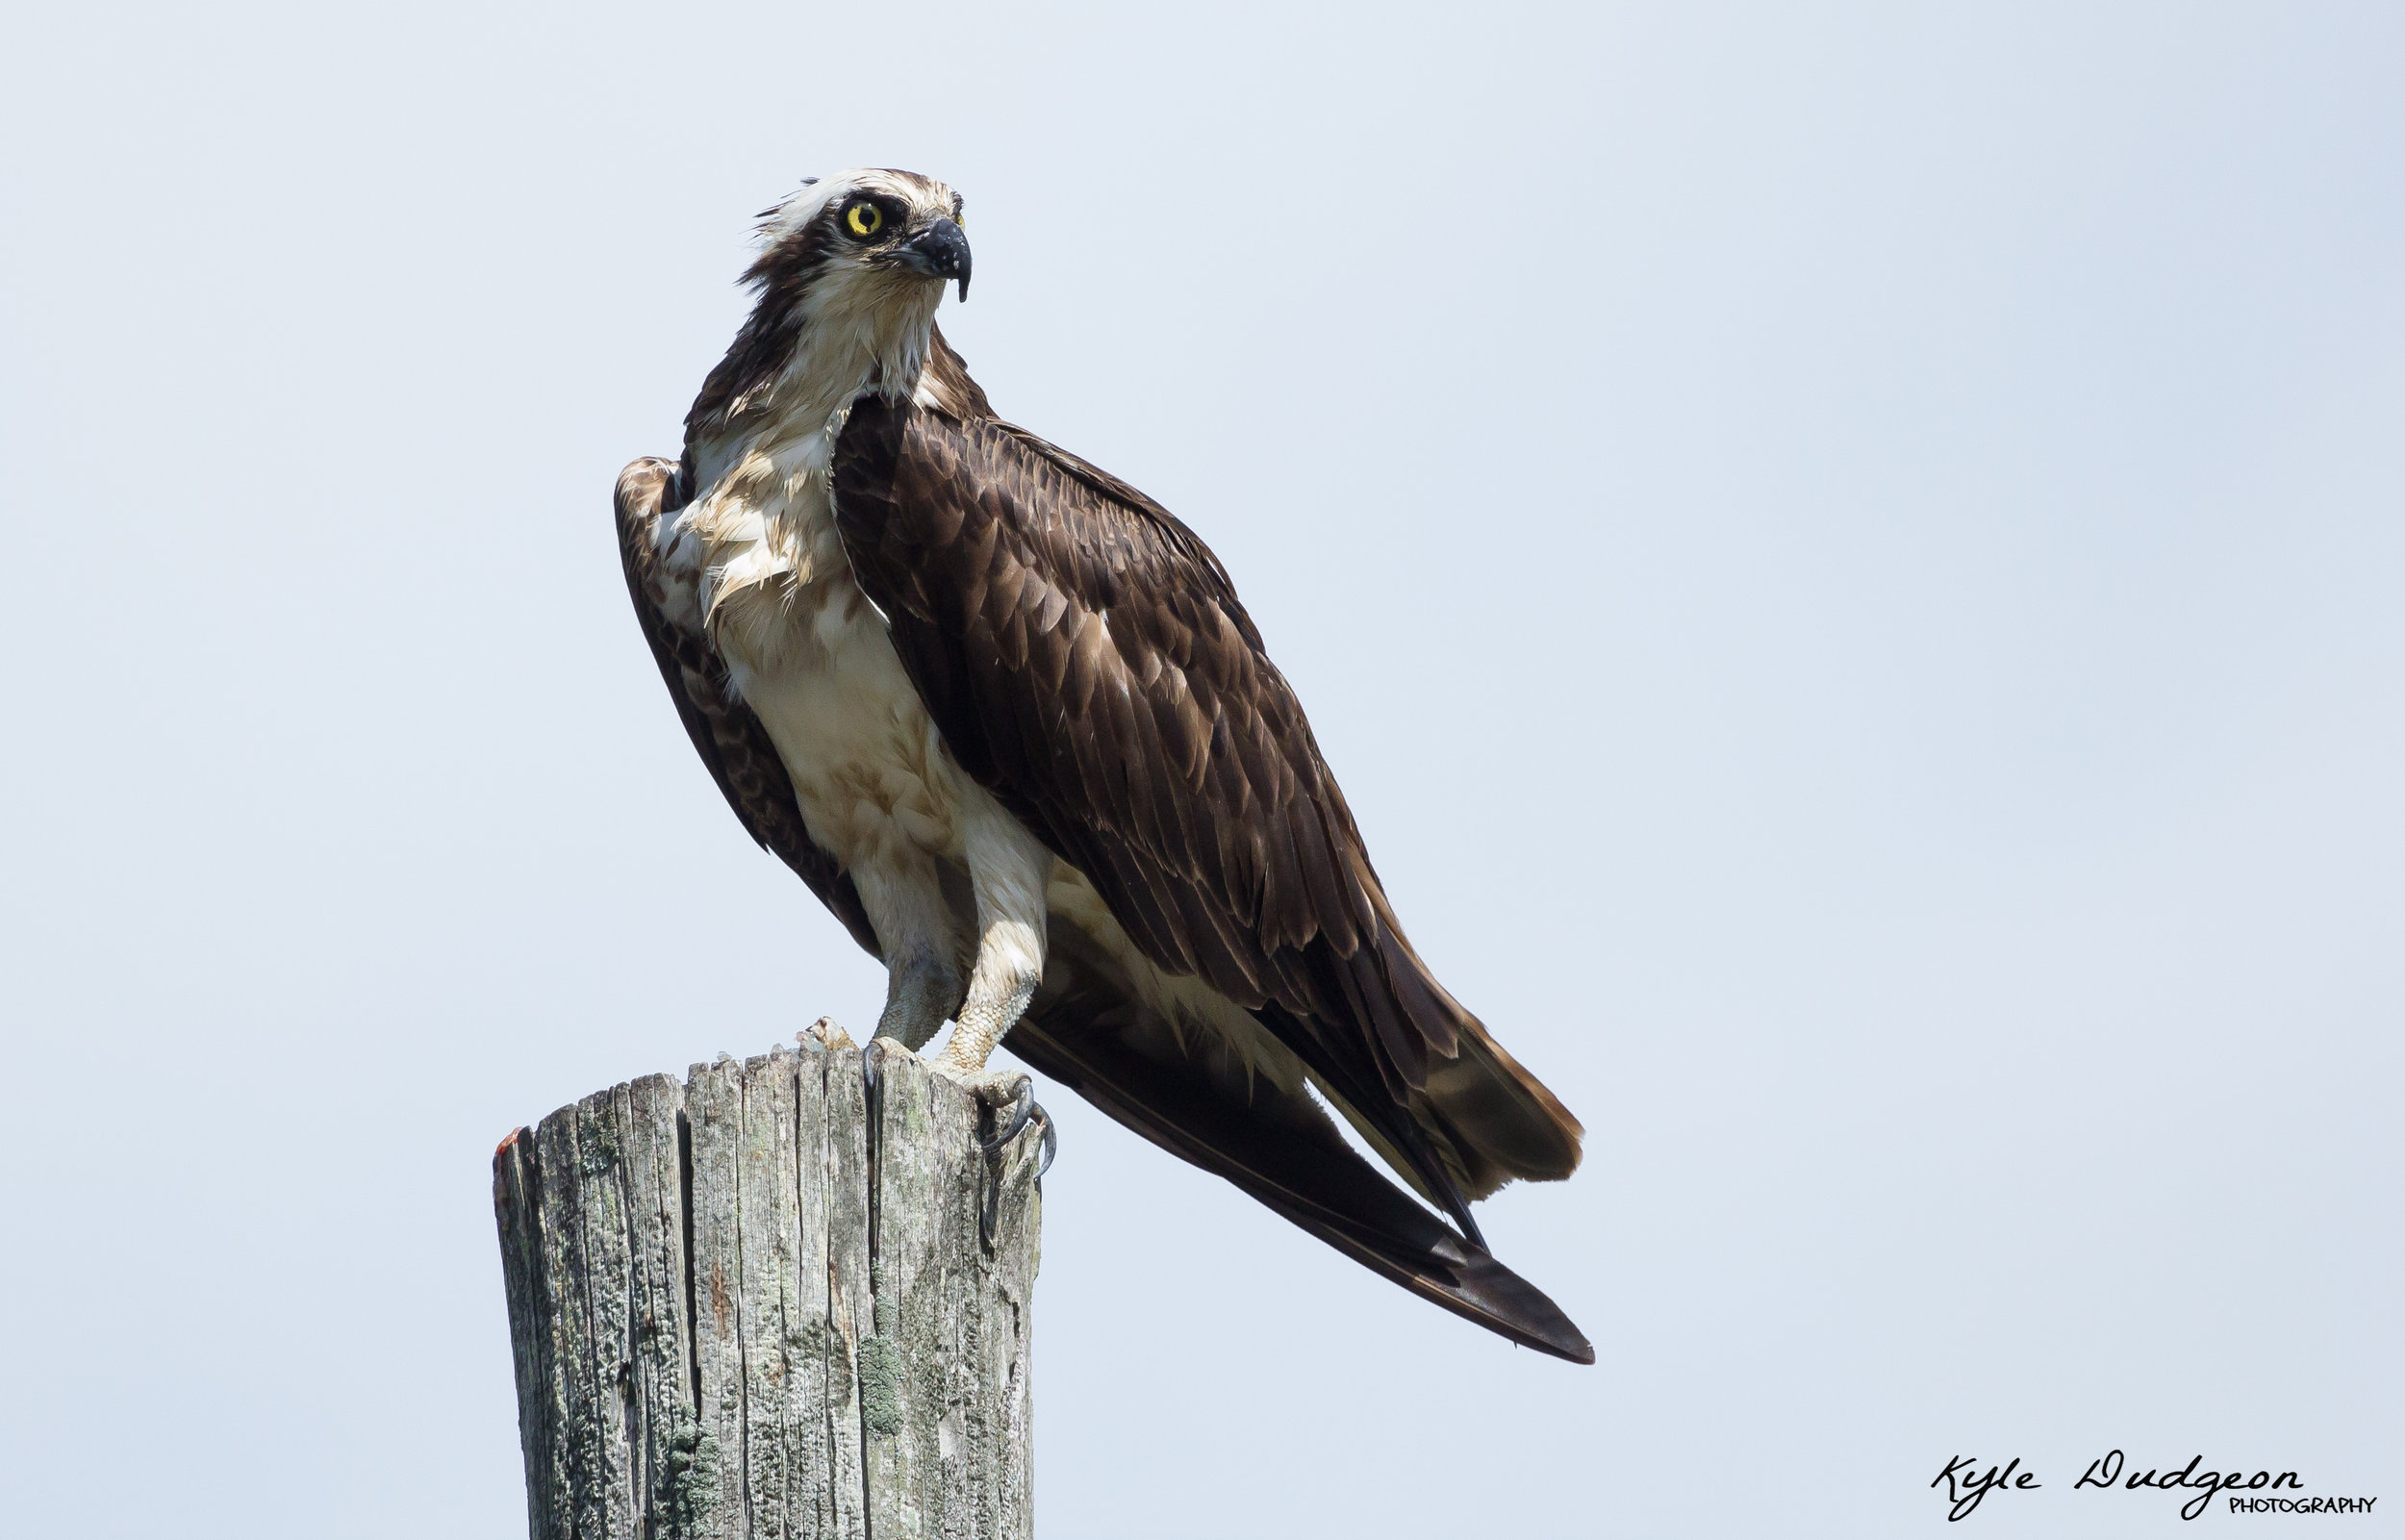 Osprey with breakfast in Galloway, NJ. 8/10/16.